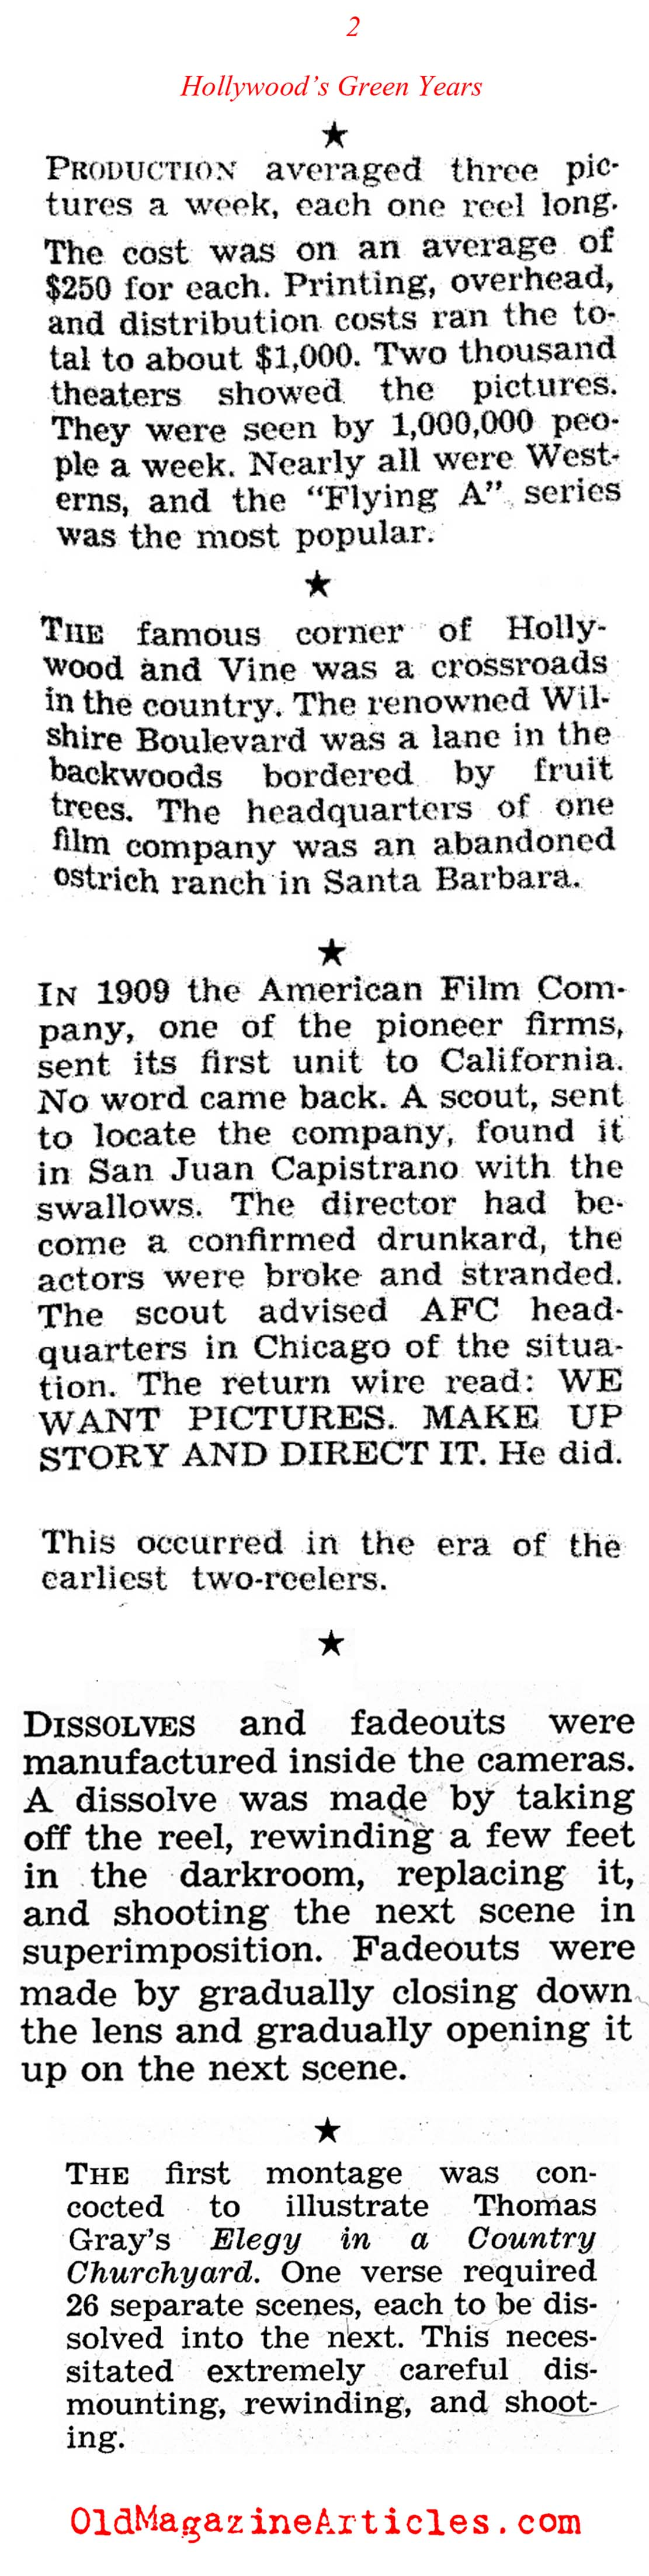 Fast Facts About Hollywood Silent Movies ('47 Magazine, 1947)